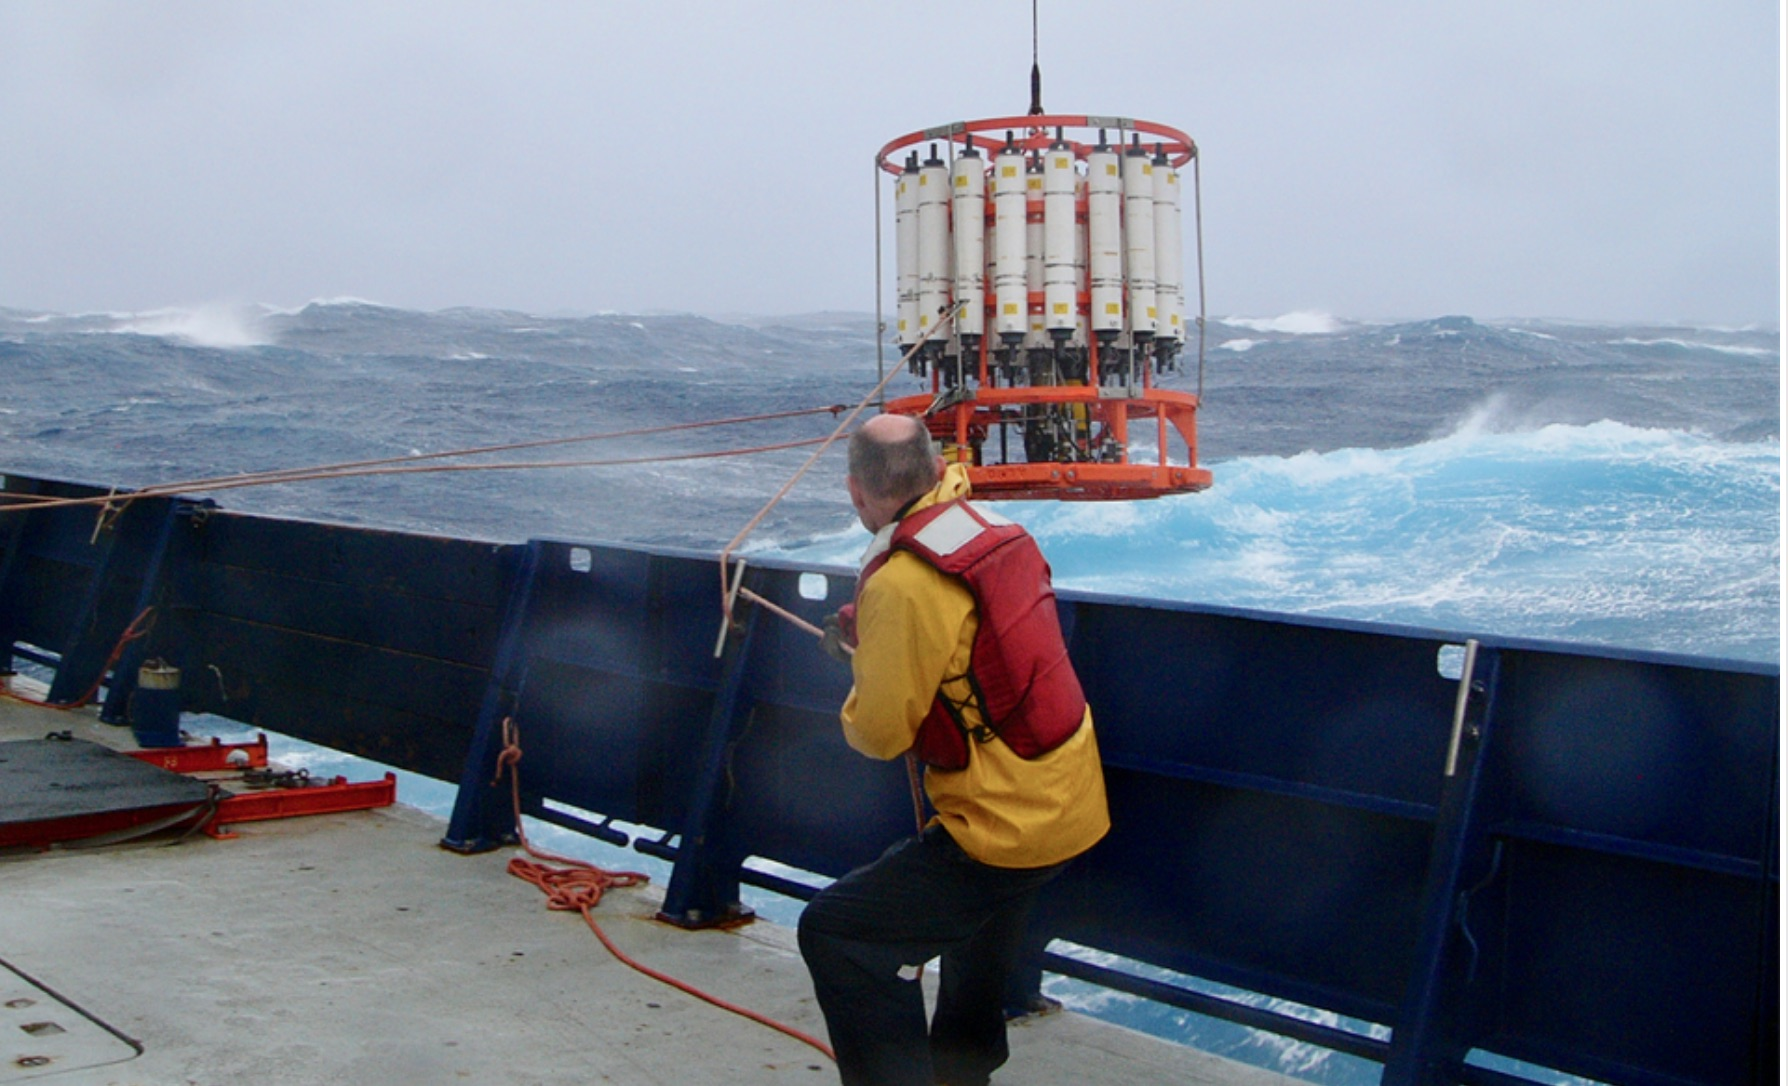 Recovering a rosette water sampler from the deck of ship. Credit: NOAA.